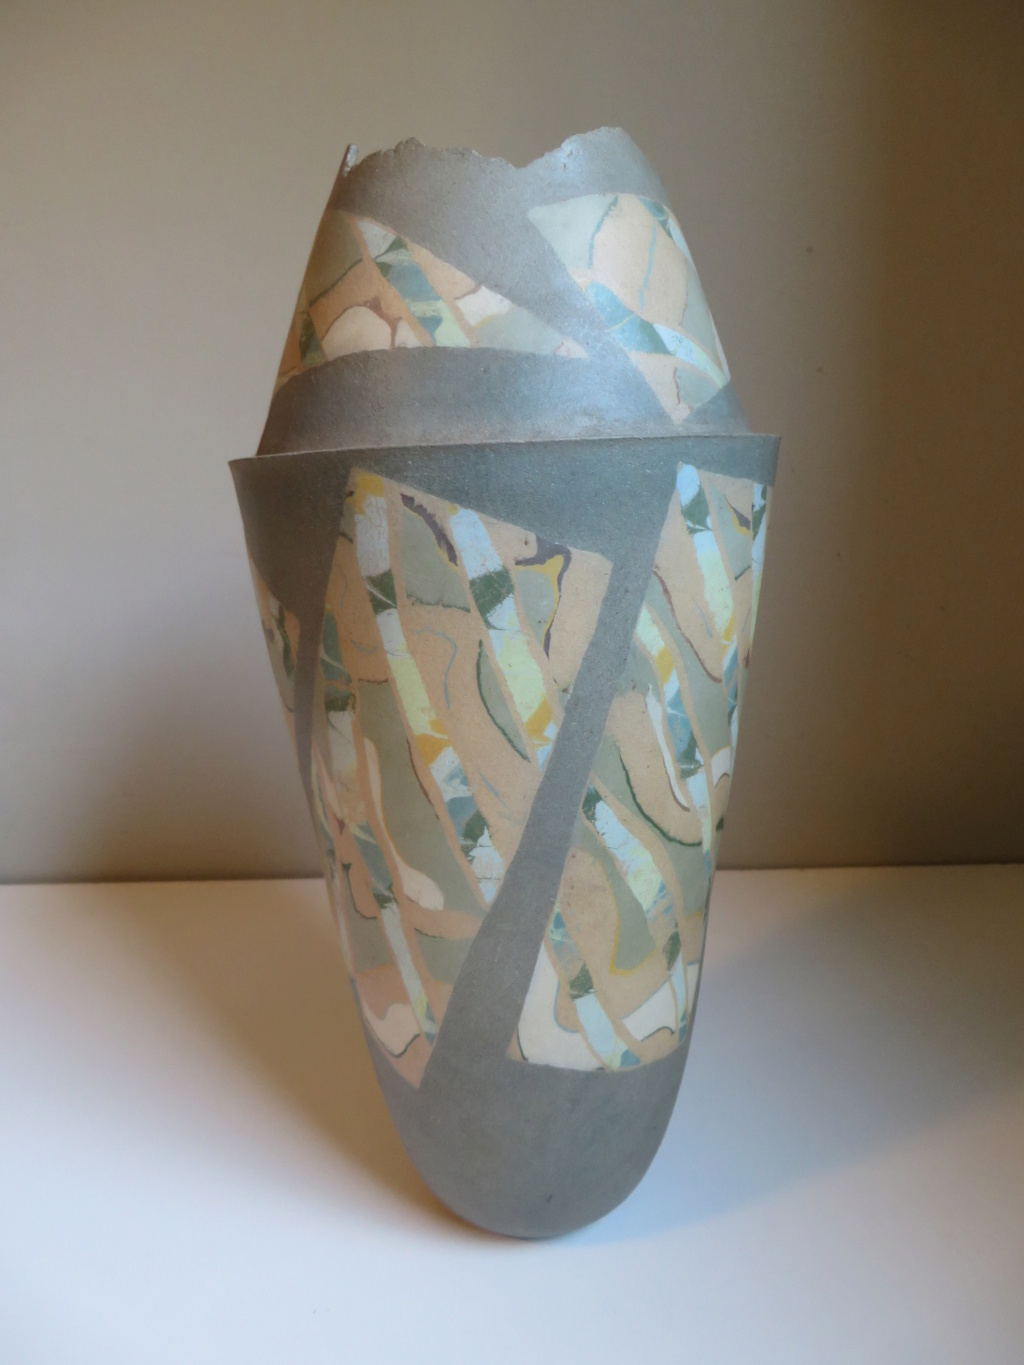 Bullet shaped vase with incised triangle mark - Tina Vlassopulos Img_9714